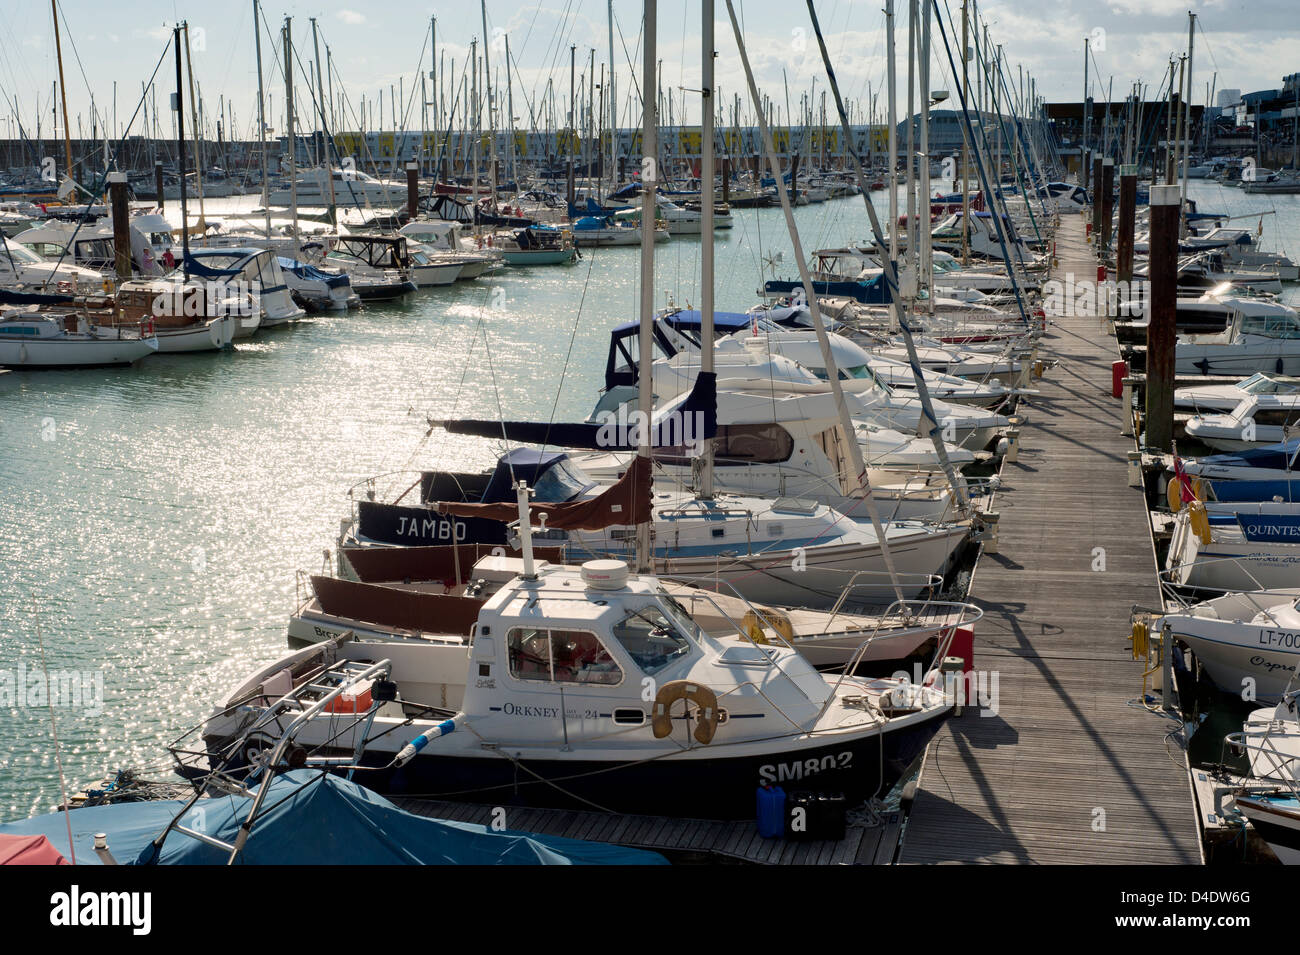 Boats and Yachts in Brighton Marina, Brighton, East Sussex, England, UK - in the late afternoon light - Stock Image